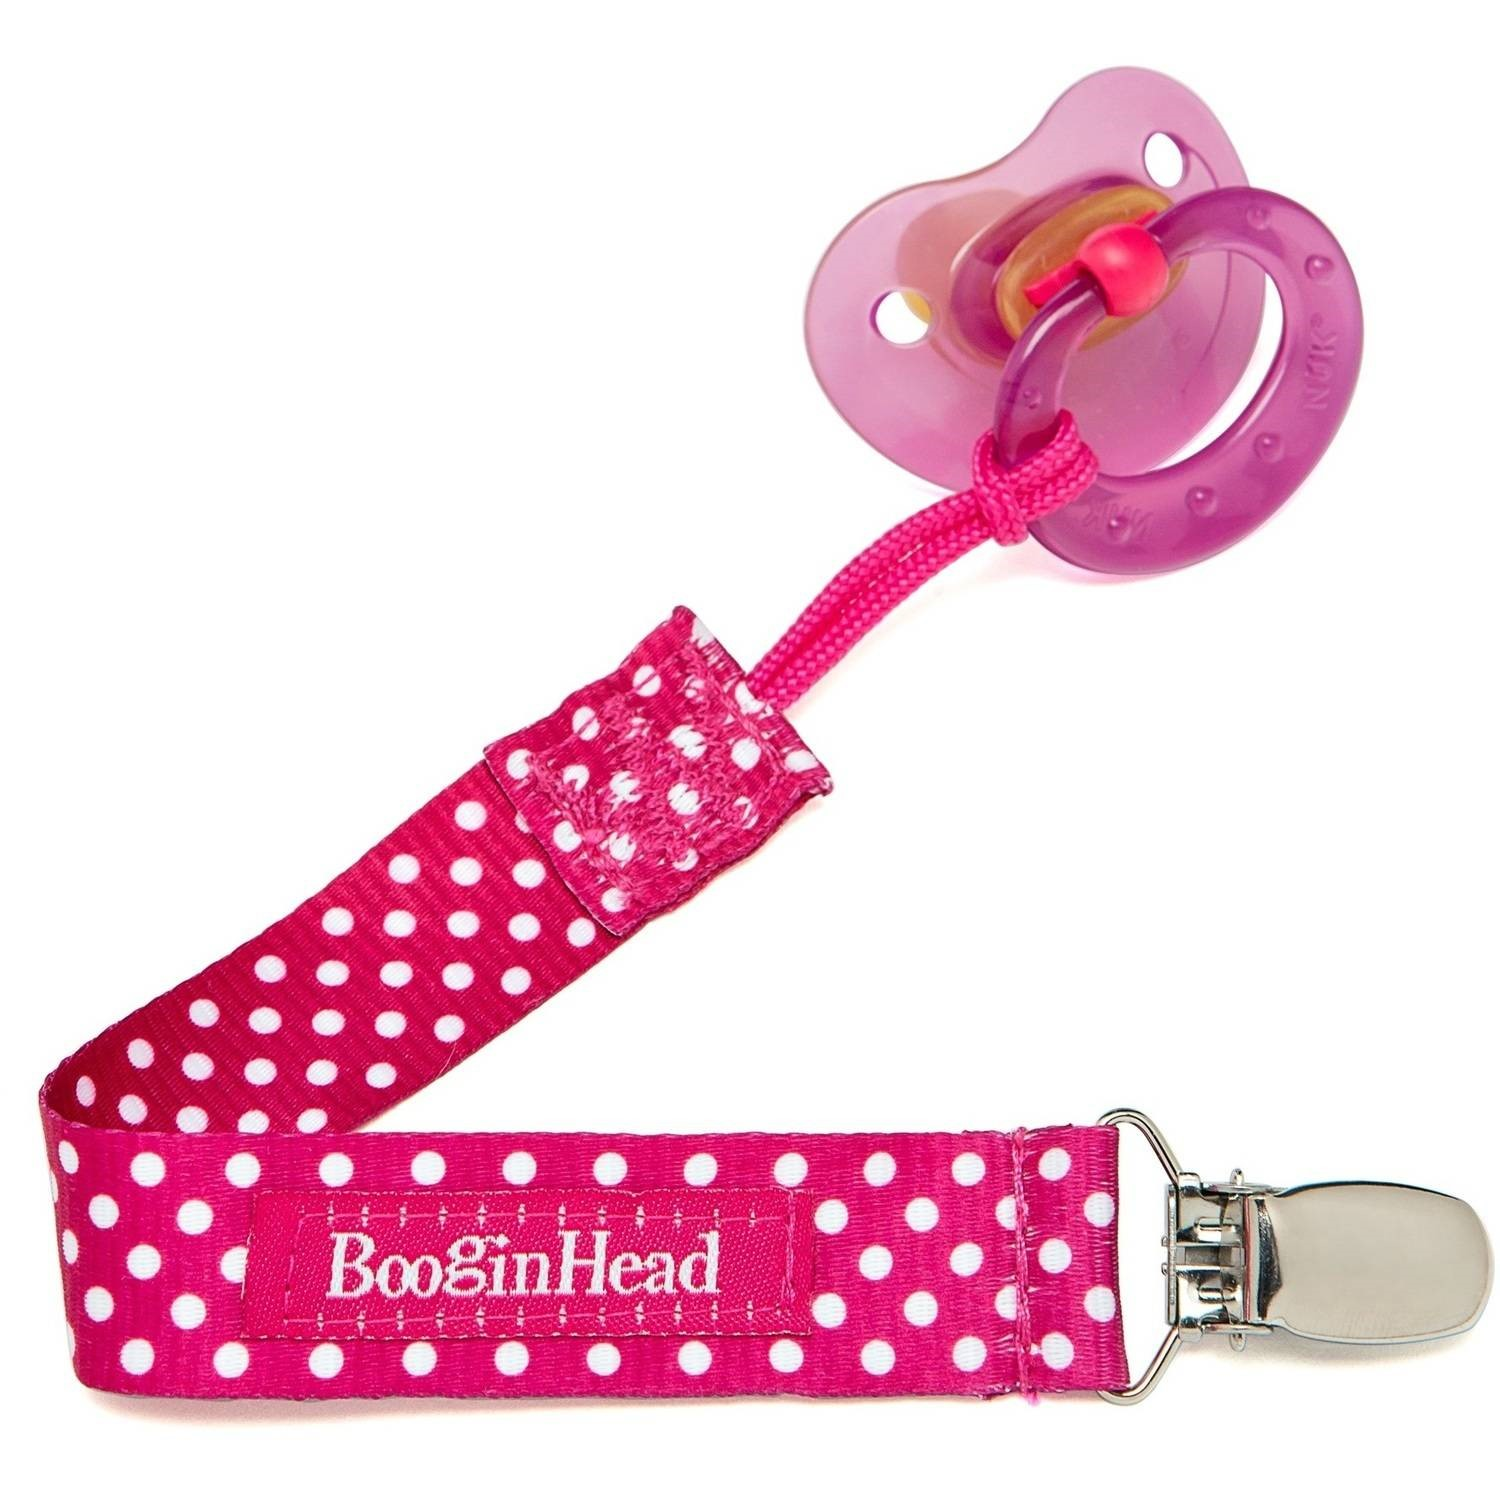 BooginHead PaciGrip Pink Polka Dot Pacifier Clip - 1 Count